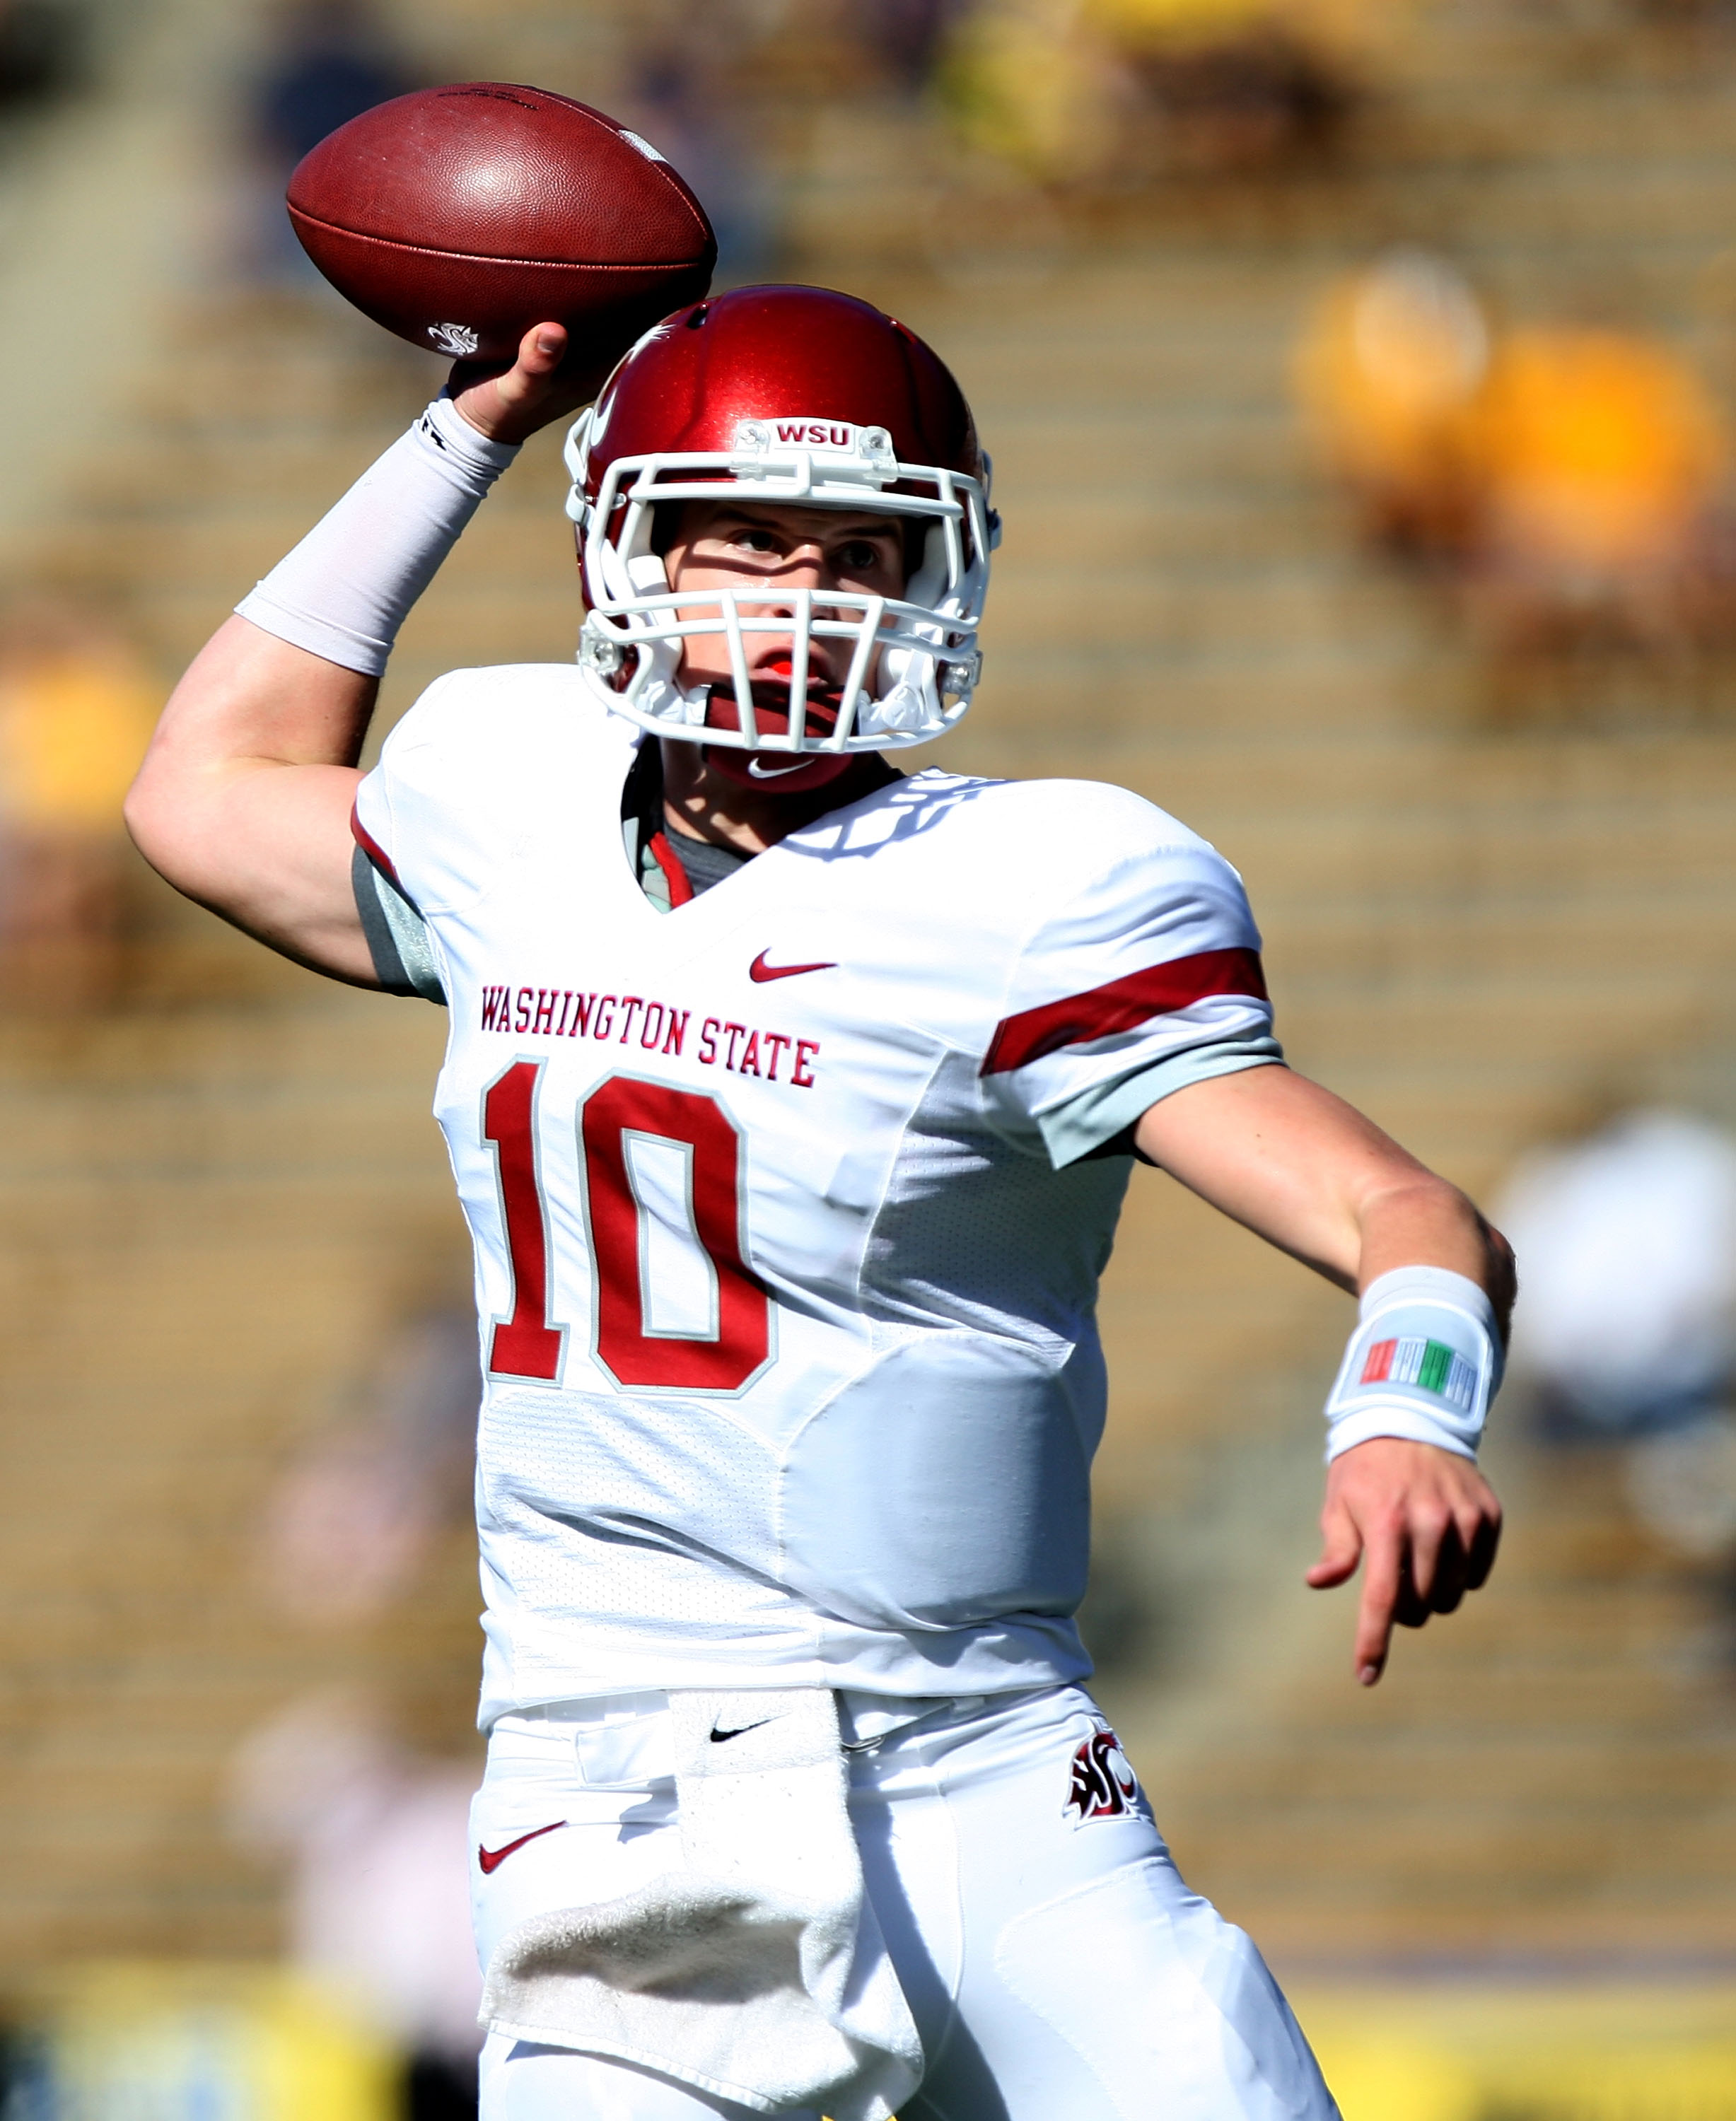 BERKELEY, CA - OCTOBER 24:  Jeff Tuel #10 of the Washington State Cougars passes against the California Golden Bears at California Memorial Stadium on October 24, 2009 in Berkeley, California.  (Photo by Jed Jacobsohn/Getty Images)